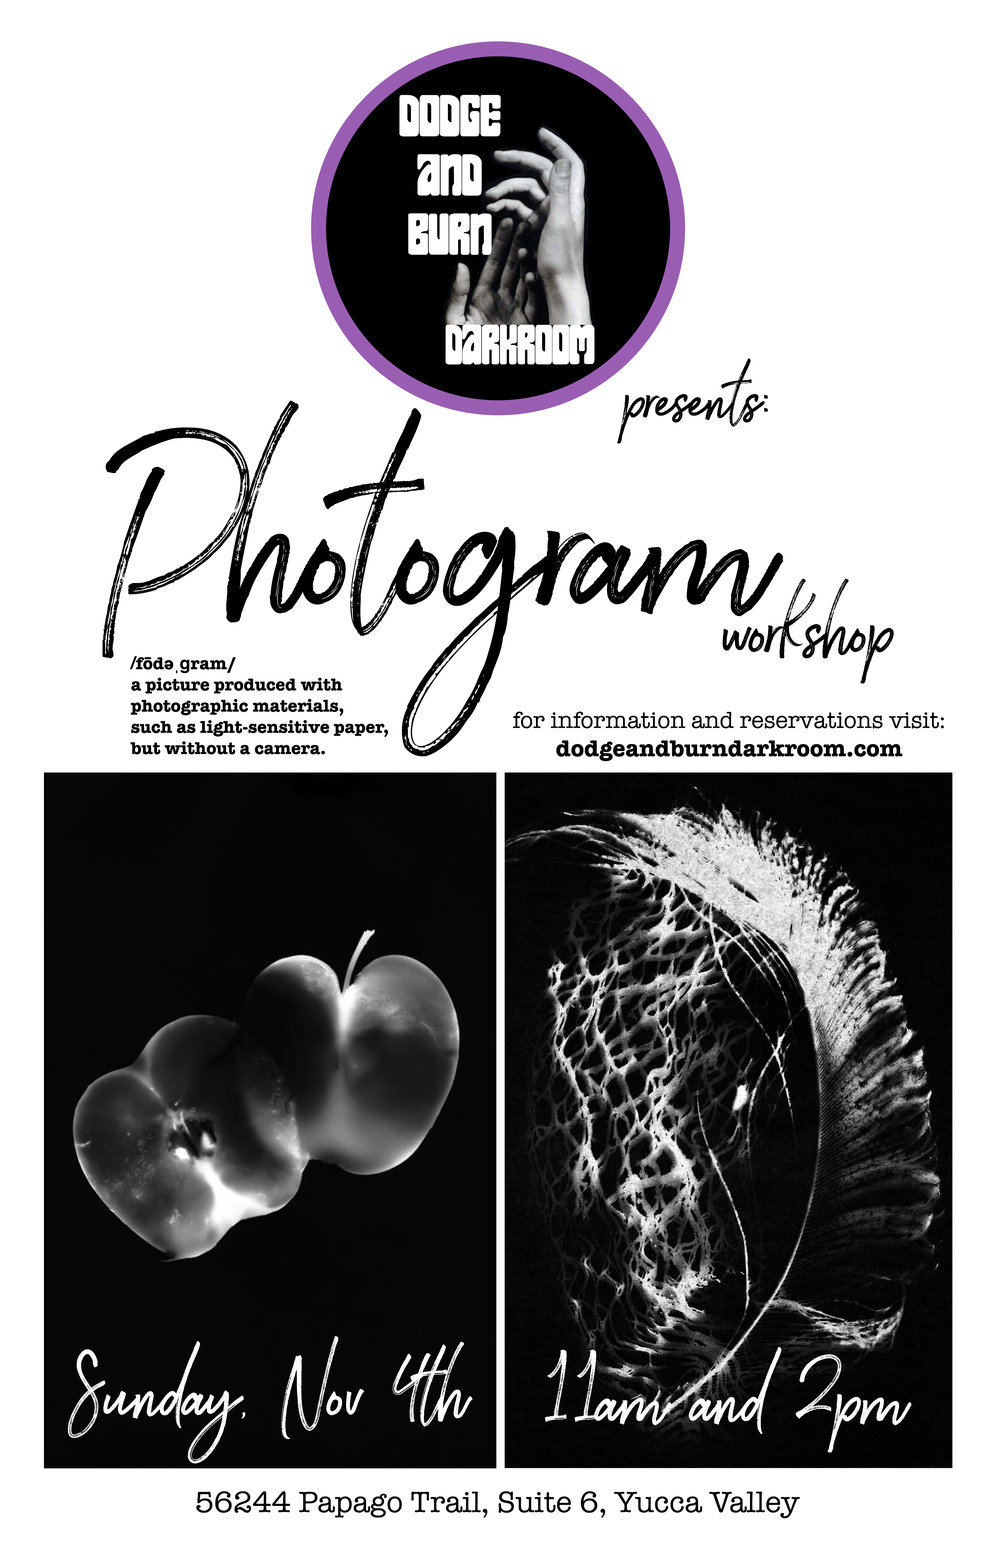 - November 4, 2018photogram - a picture produced with photographic materials, such as light-sensitive paper, but without a camera.Instructor: Carly ValentineLocation: Dodge and Burn DarkroomMaterials: Bring flora and other natural materials (no worries if you forget, I'll have items that you can use). 2 sheets of photographic paper will be provided per person.You'll arrange the items of your choosing on the light-sensitive paper and expose it to light, using the photo enlargers, in the darkroom. I'll then teach you how to develop the paper and we'll hang them to dry. You can also use our scanner at the end of class if you'd like, so you'll have a digital file of the image you created.Fee: $20SPACES ARE VERY LIMITED!